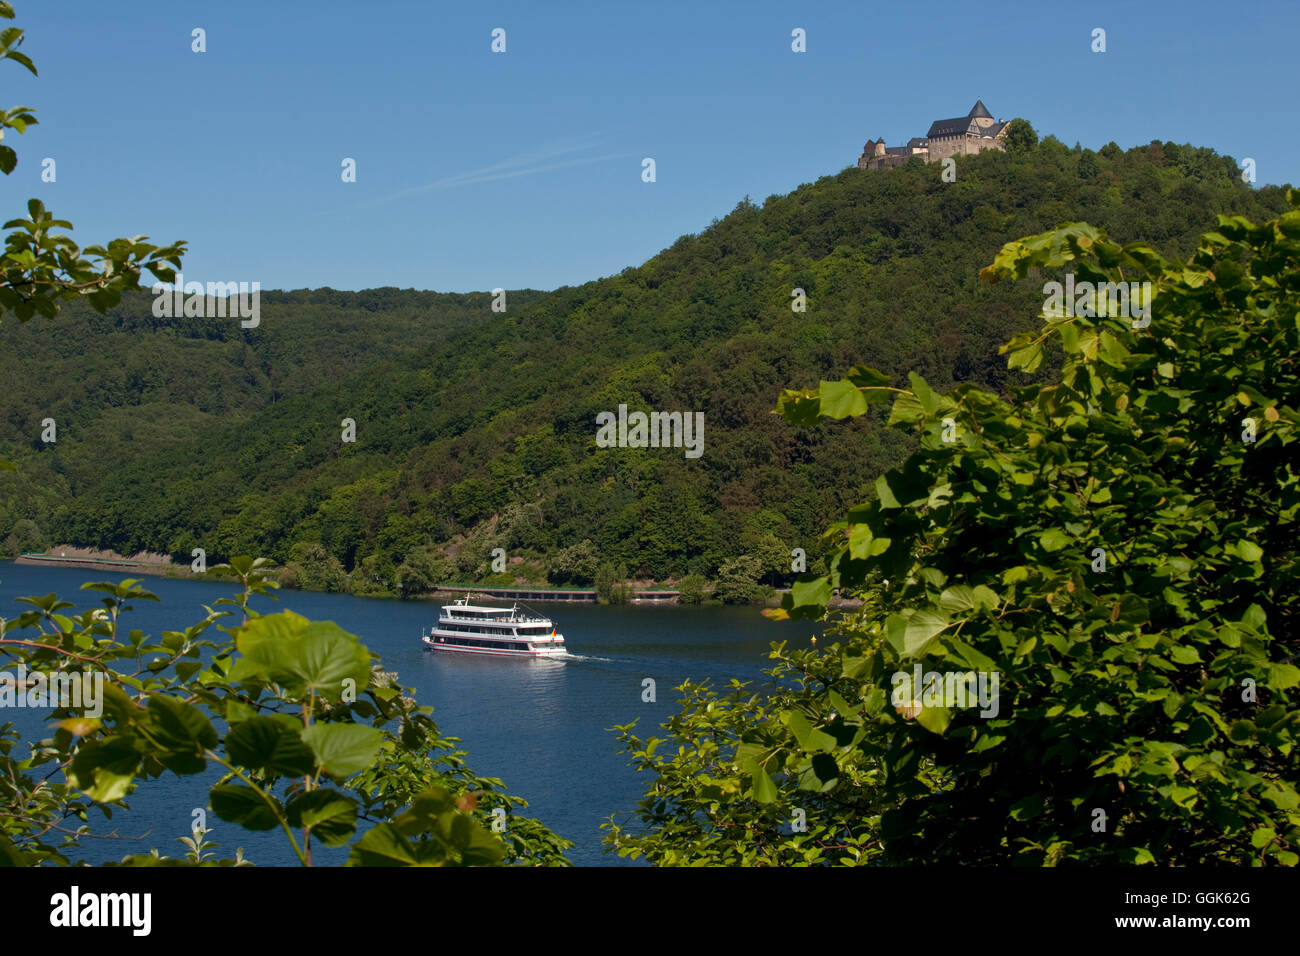 Waldeck Castle and excursion boat Stern von Waldeck on Lake Edersee in Kellerwald-Edersee National Park, Lake Edersee, - Stock Image